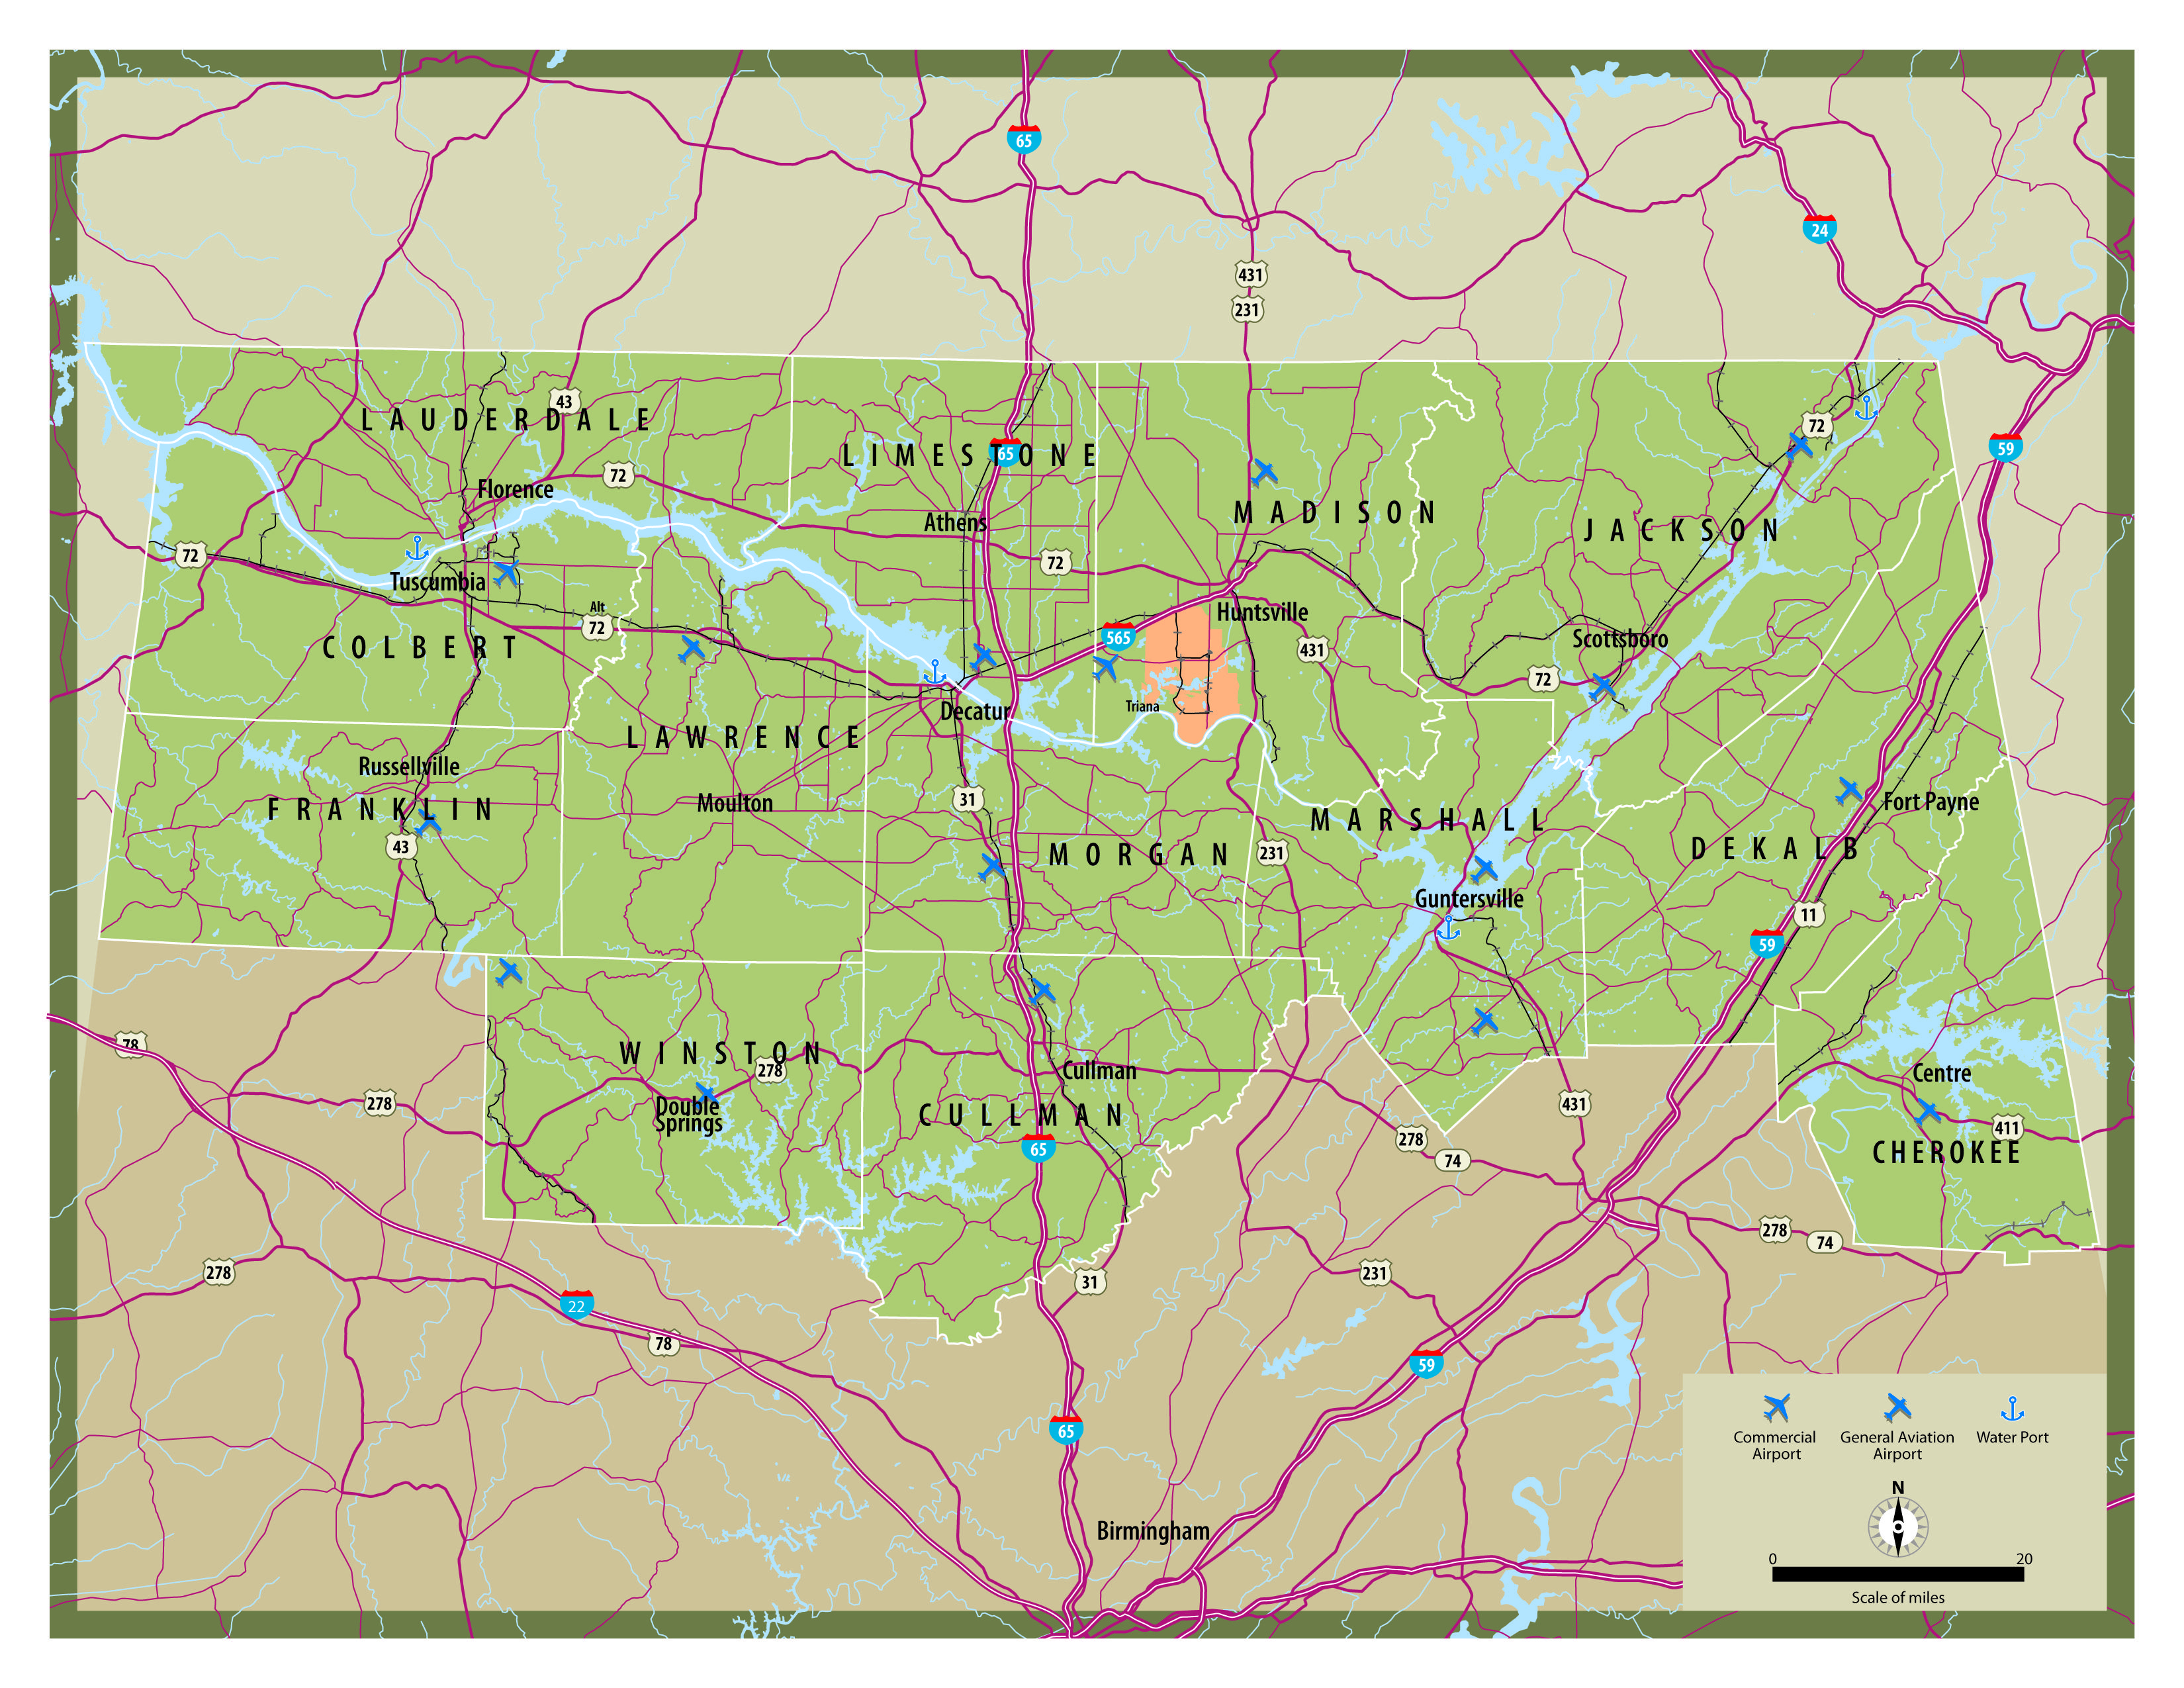 university of alabama campus map with Map Of North Alabama on Map in addition Parking moreover File University of Alabama at Birmingham C us from Vulcan likewise Accredited Ultrasound Technician Schools In Memphis Tennessee besides 25 Maps That Explain College Football.